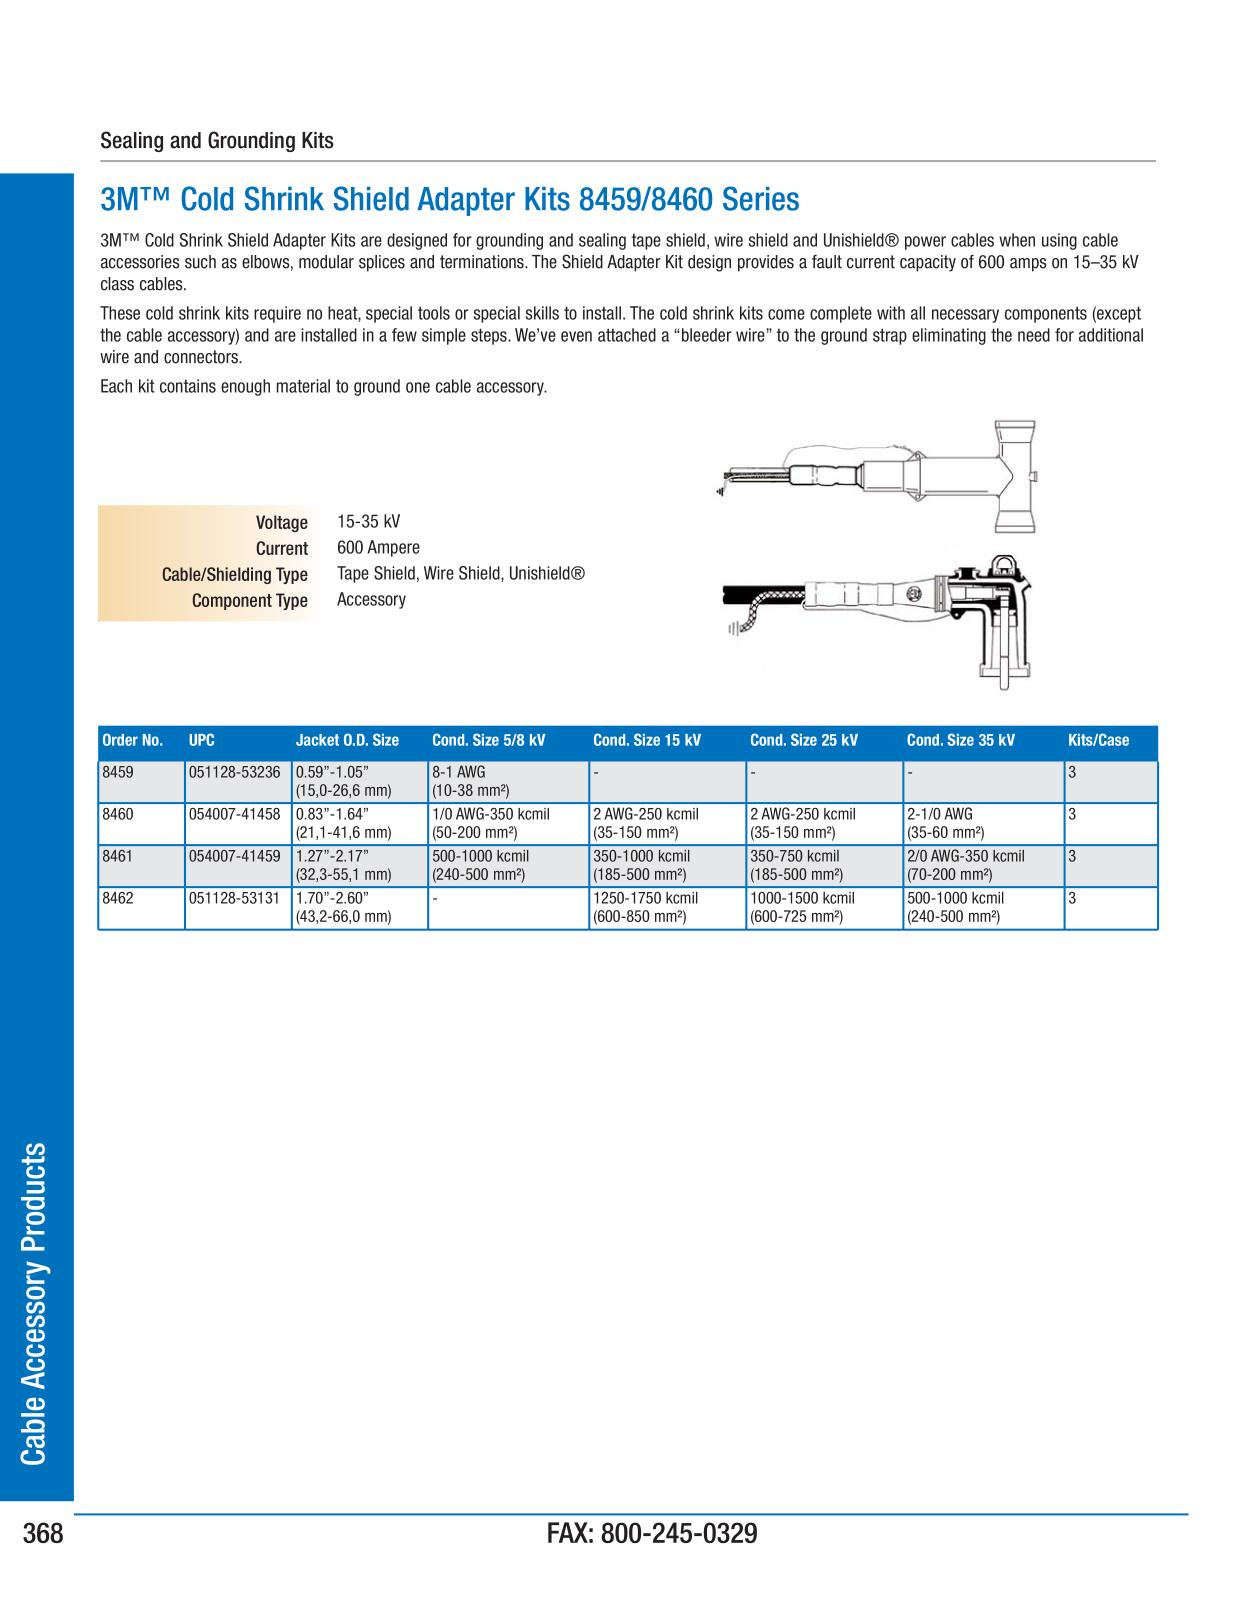 Cable accessory products 3m electrical products page 369 greentooth Gallery